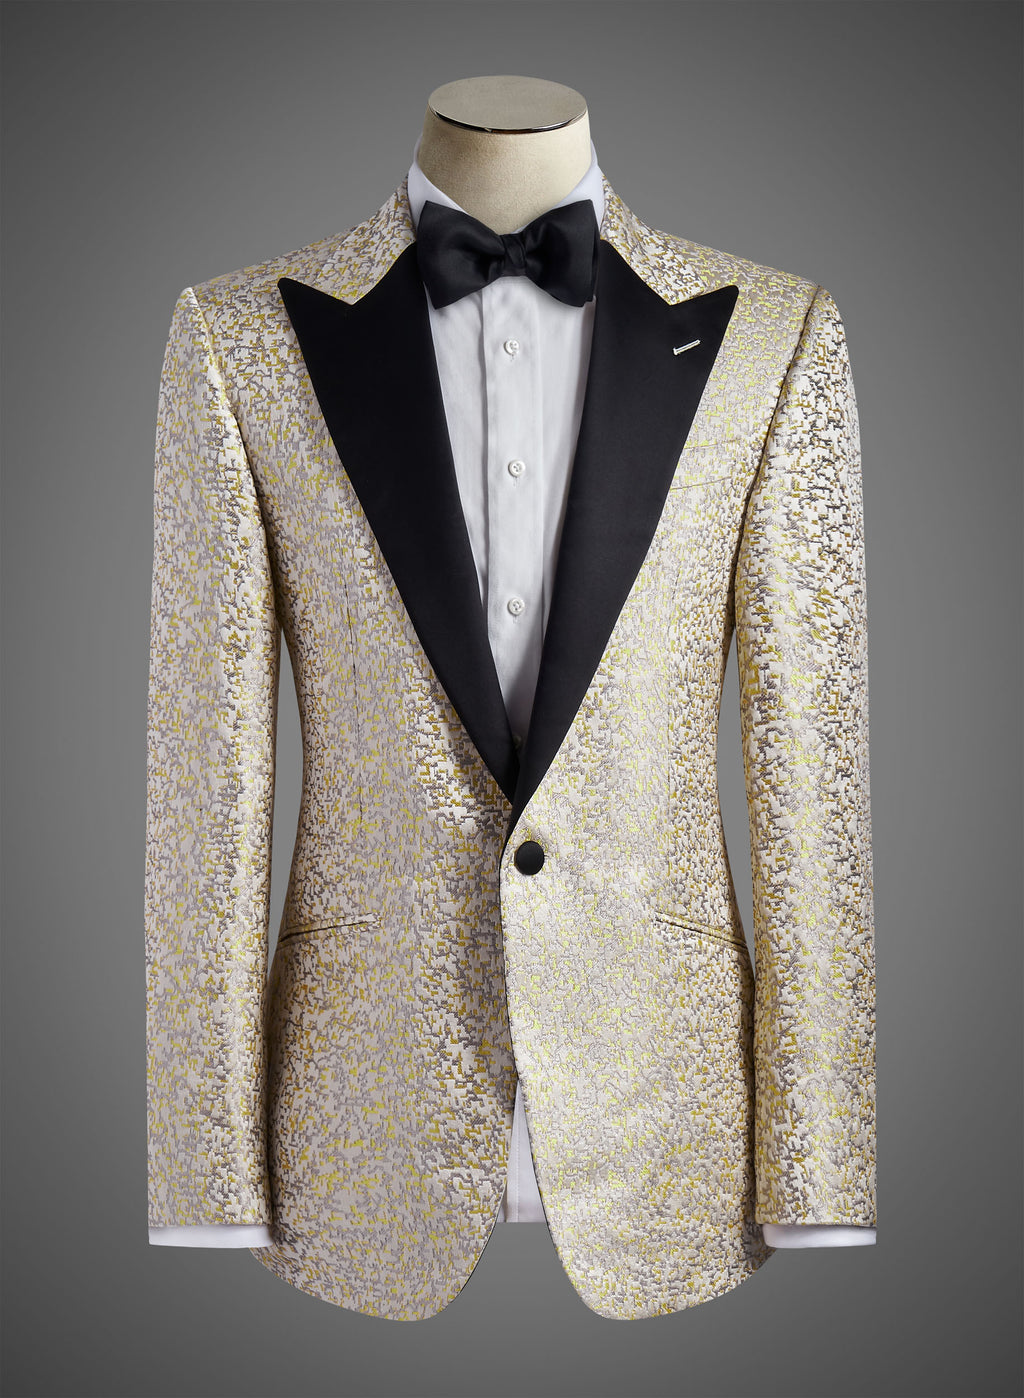 BW SIGNATURE JACKET - Satin Peak Lapel  (Impression 3874 05)